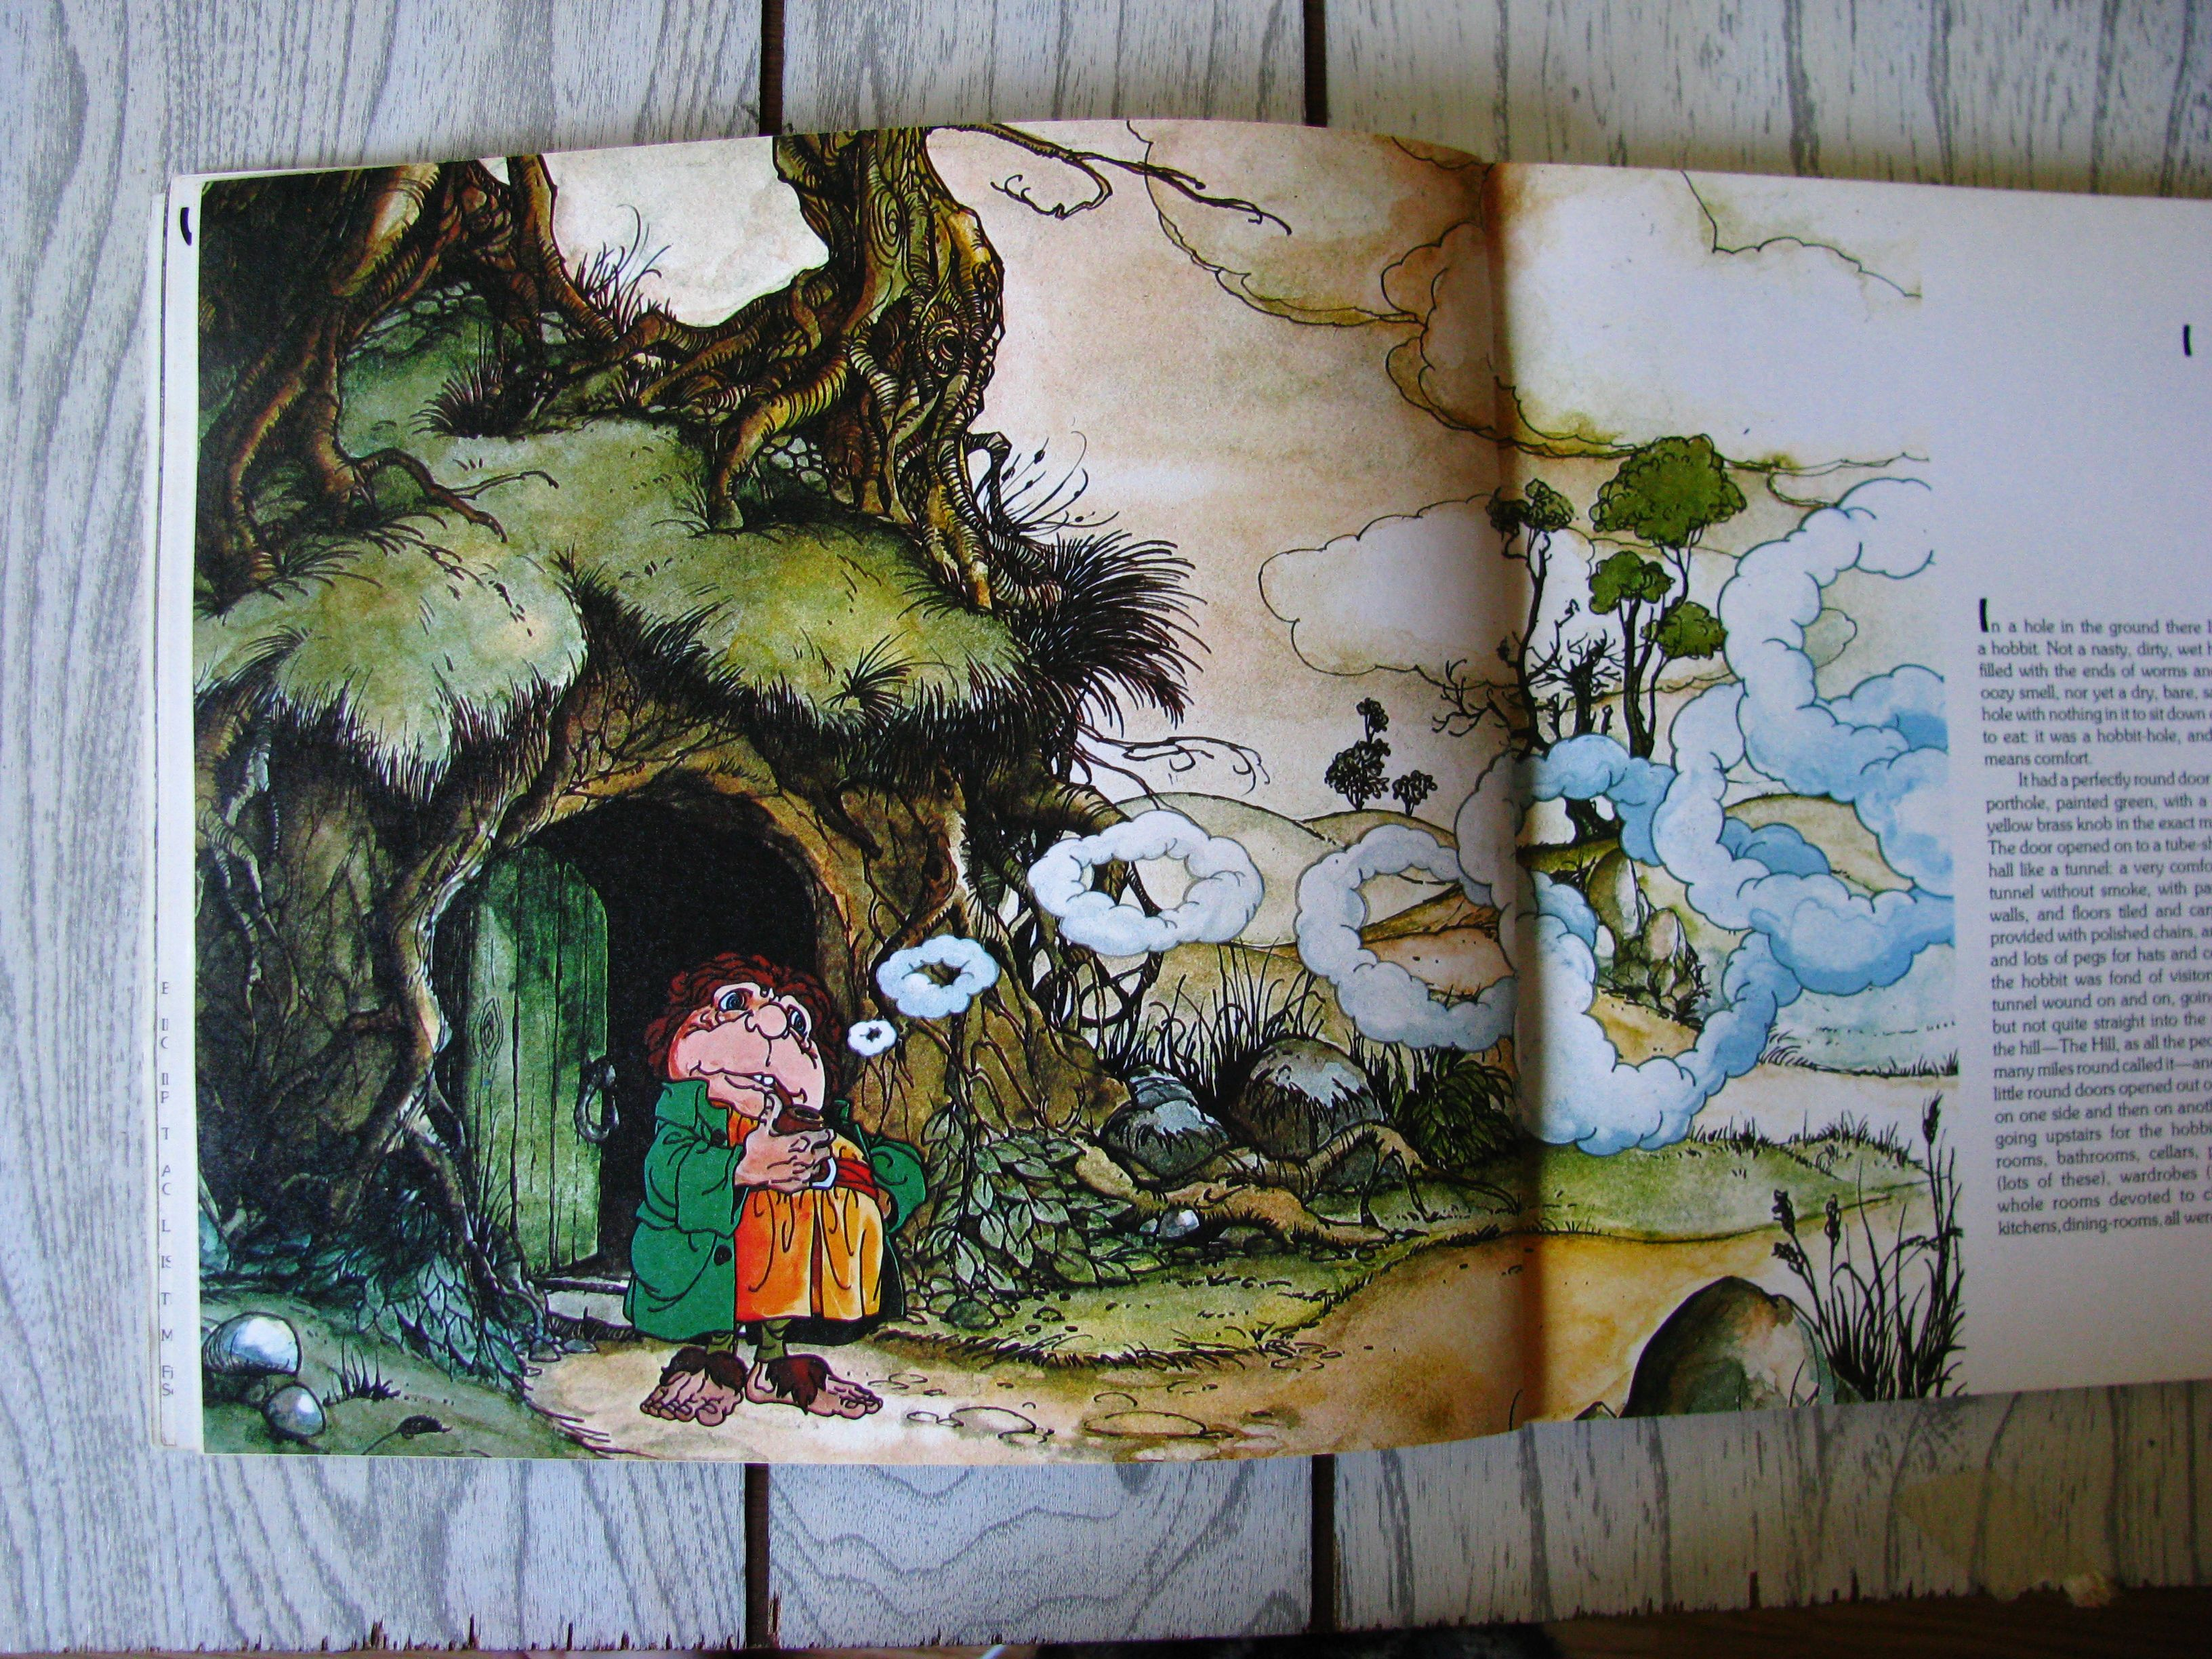 Another page from the Hobbit illustrated by Rankin and Bass.